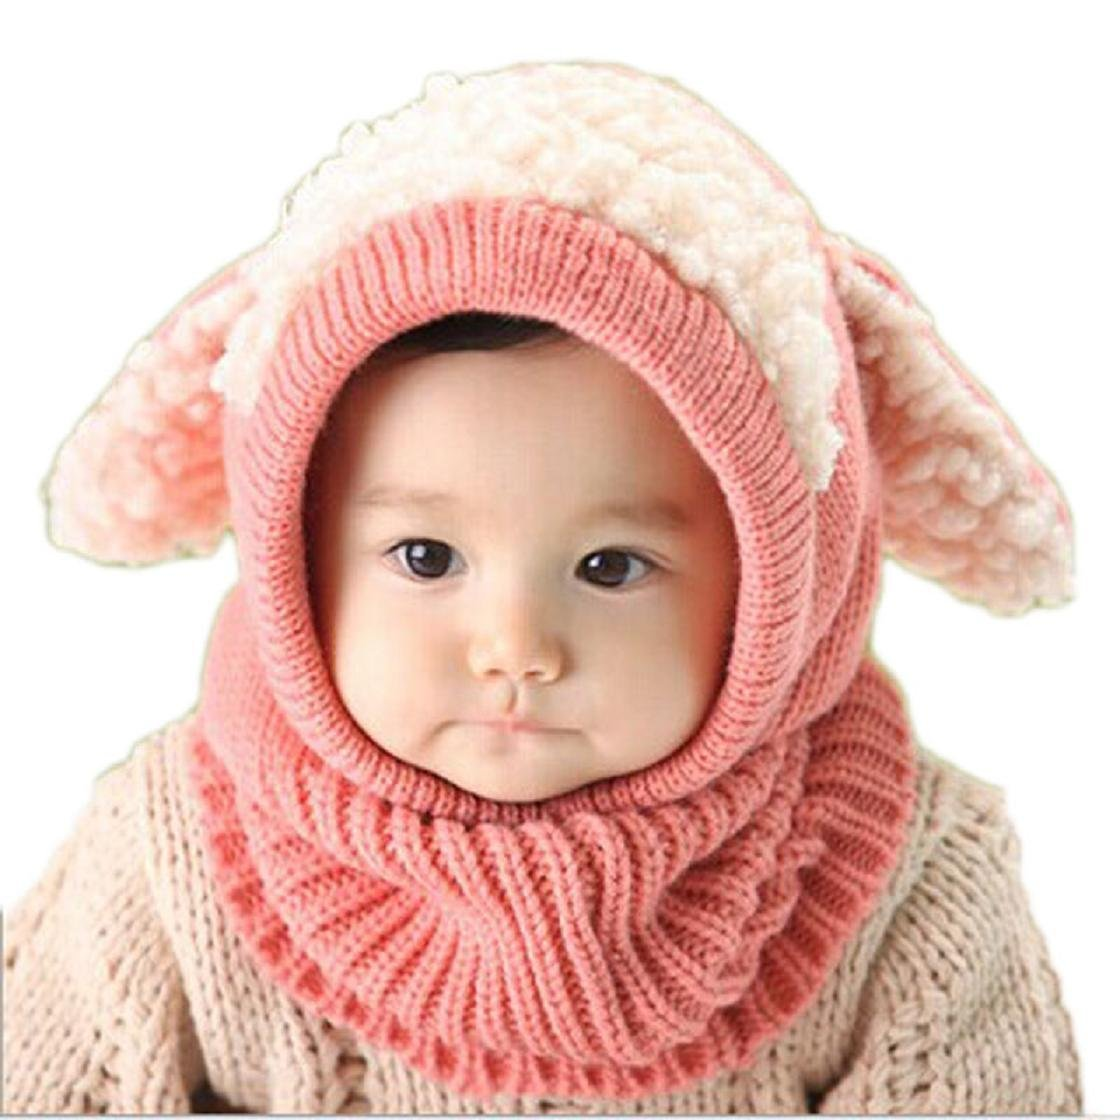 Girls Hoodie Hat Scarf, SevenPanda Unicorn Tassel Wool Winter Fall Knitted Shawl Hats Cap Hooded Cloak Caps Coif Hooded Scarves Ear Neck Warmer Beanies Cap Hat Beanies Party Cosplay Gifts for 3-12 Year Old Children Girls - Pink Unicorn DuJiaoShou-MaoZi-Fen